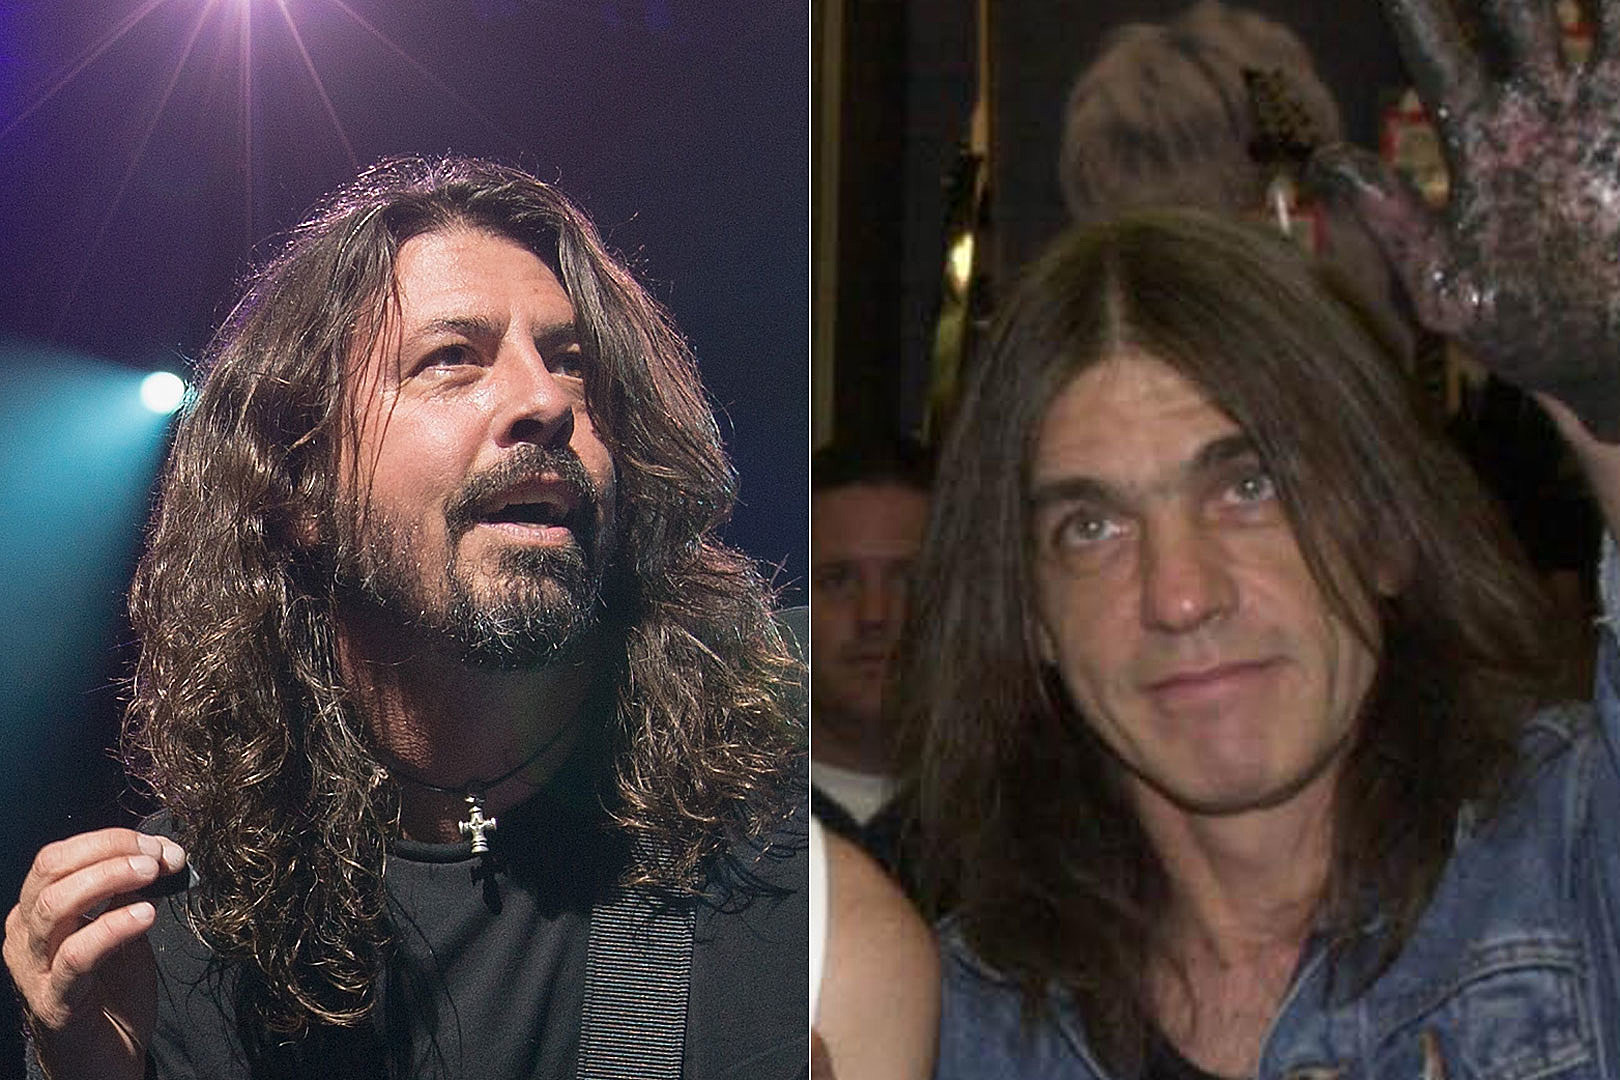 Foo Fighters' Dave Grohl Pays Tribute to AC/DC's Malcolm Young Online + Onstage